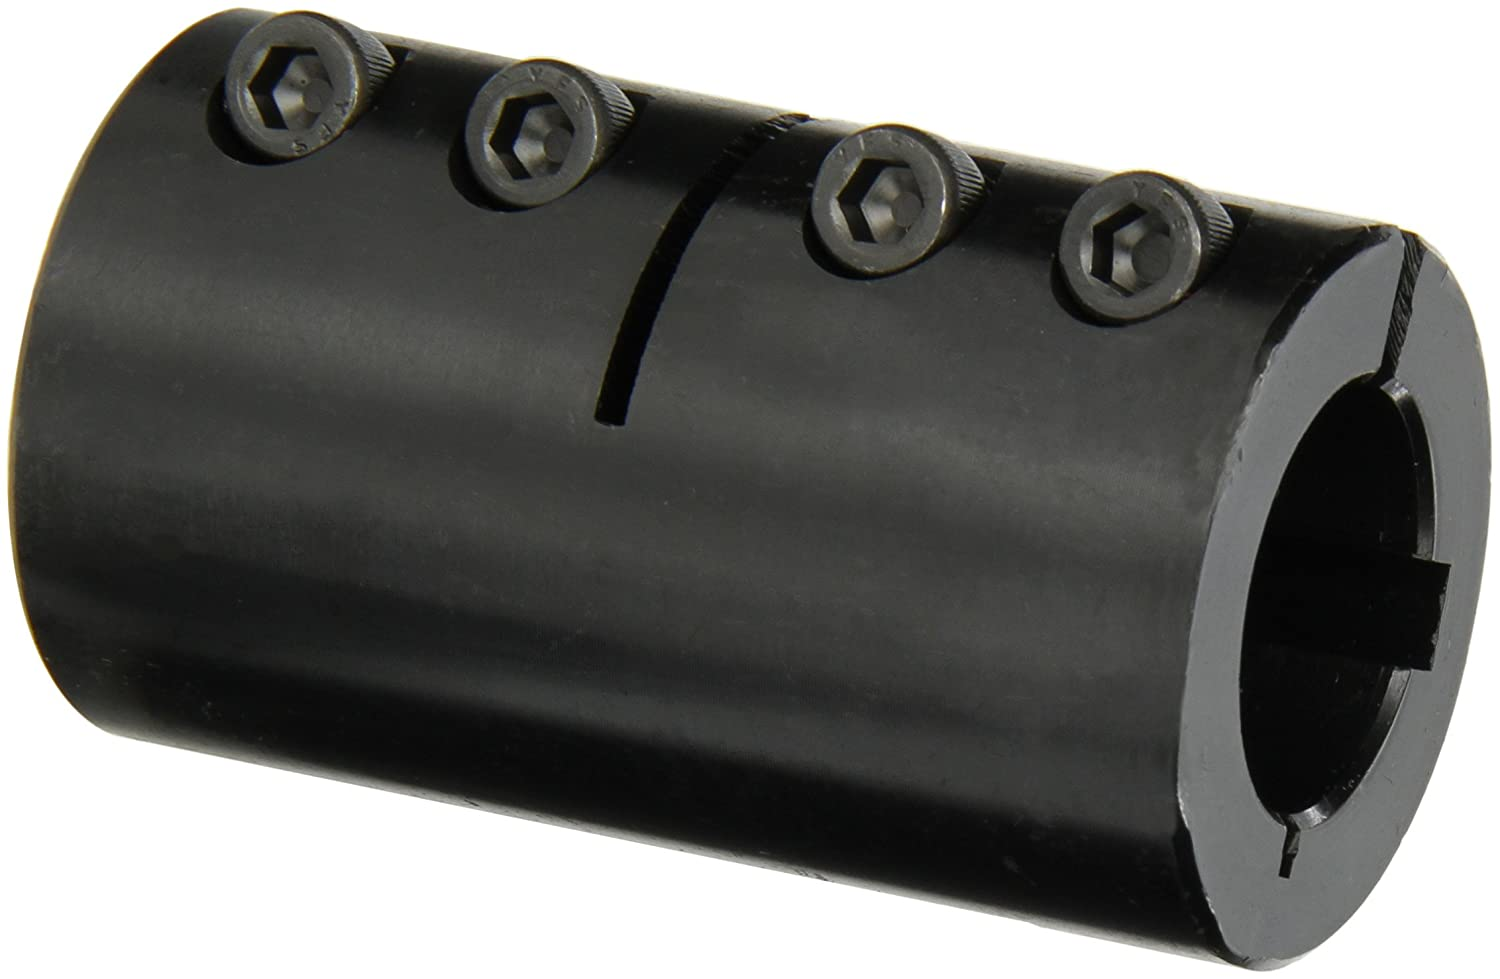 13//16 inch OD Black Oxide Plating Clamping Coupling Climax Part CC-025-025 Mild Steel 1//4 inch X 1//4 inch bore 1 1//4 inch length 4-40 x 3//8 Set Screw